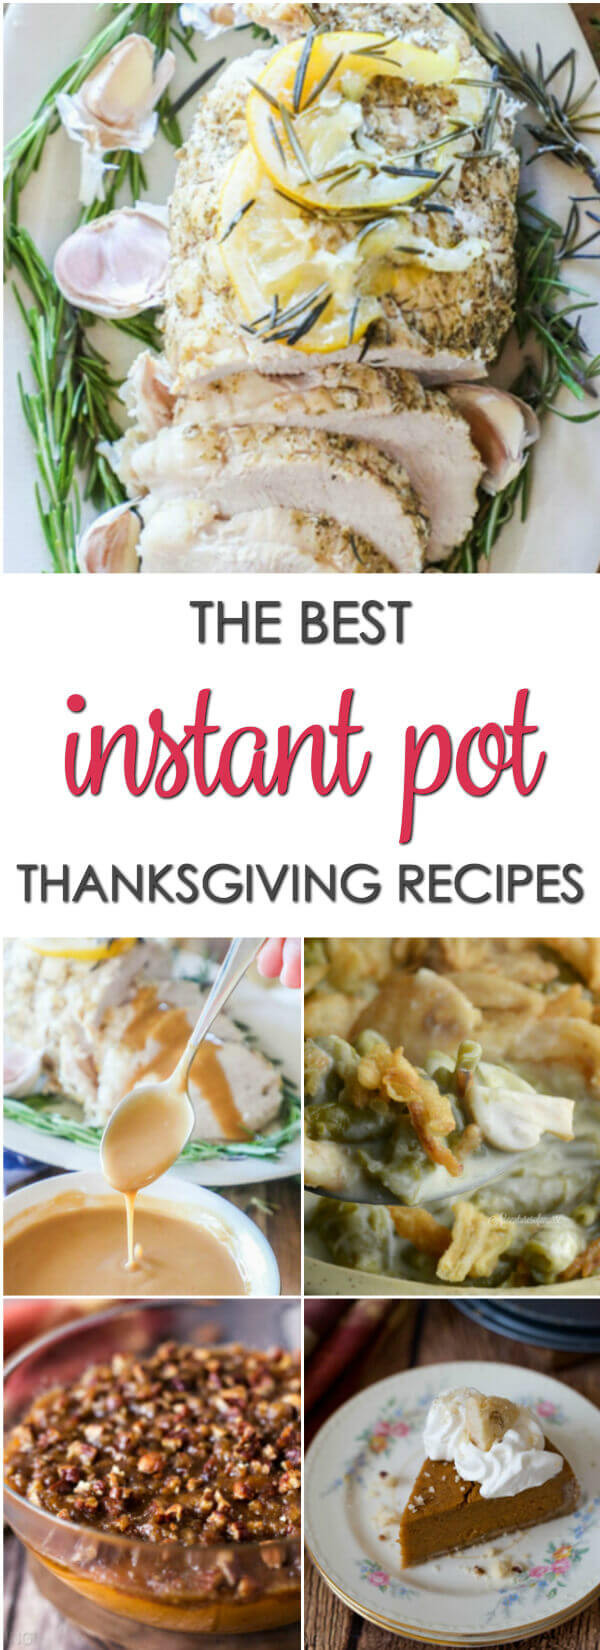 Instant Pot Thanksgiving Recipes  Easy Instant Pot Recipes for Thanksgiving